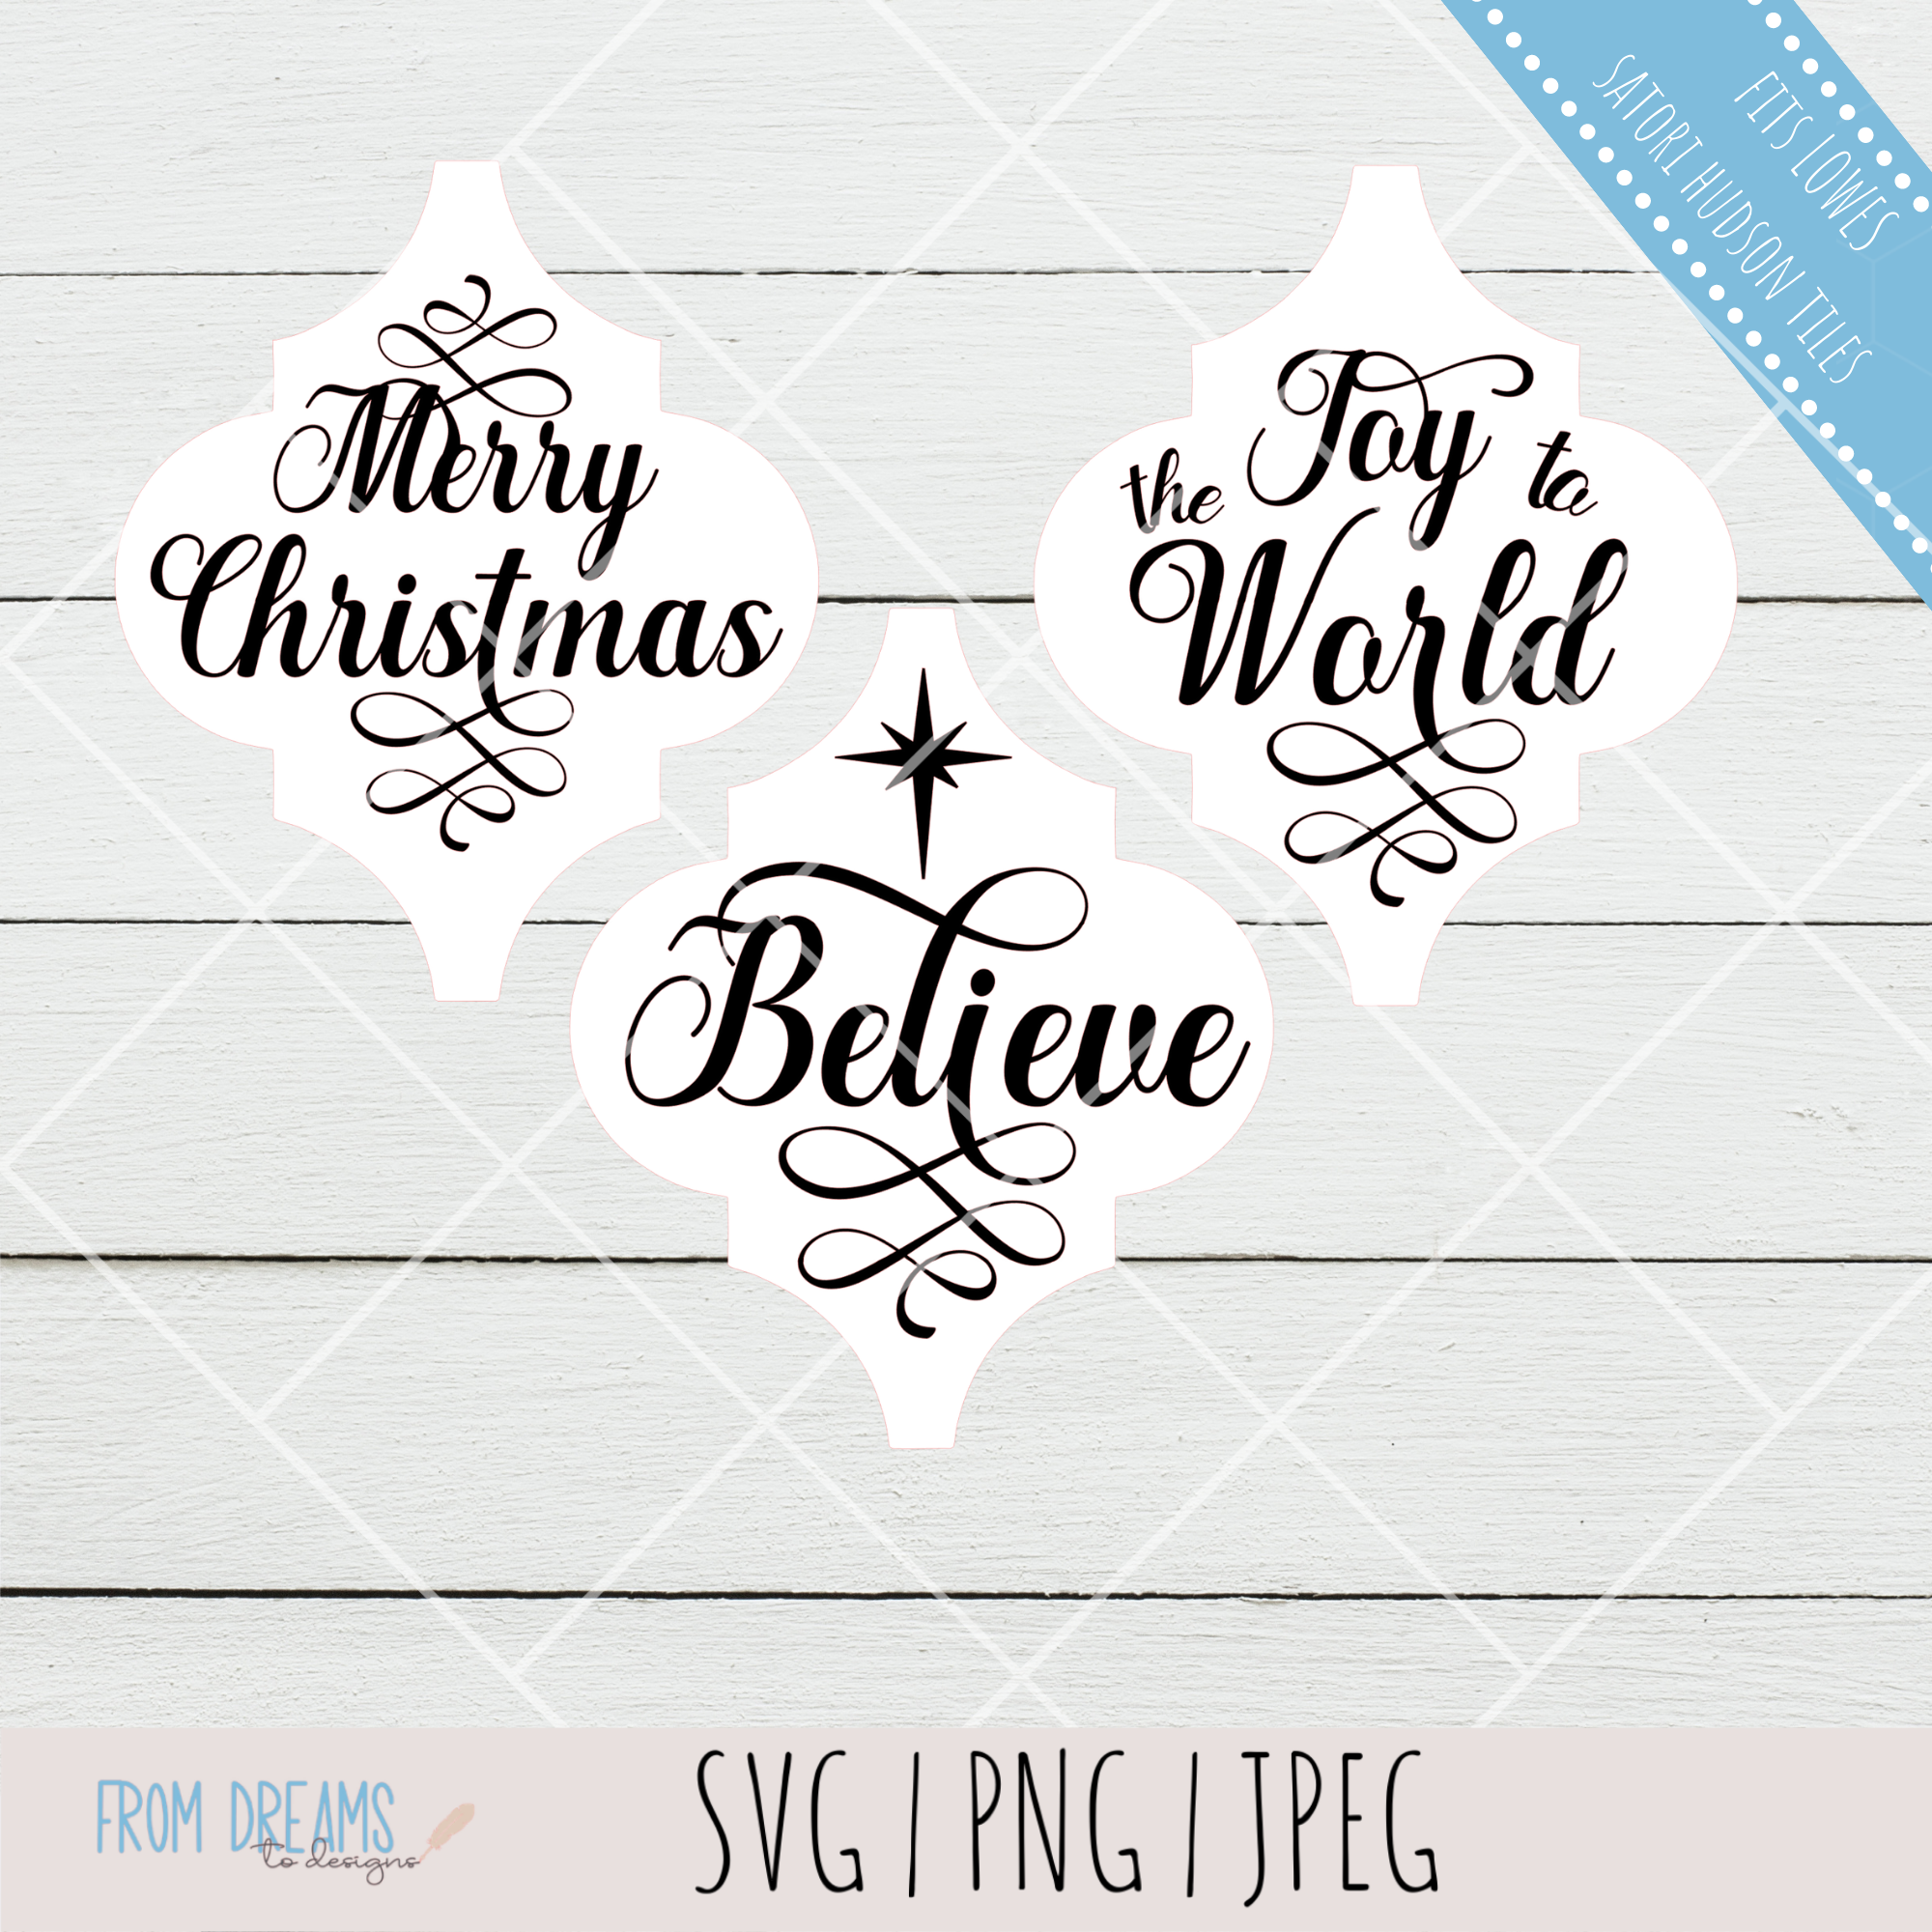 Lowes Tile Ornament Template Svg Lowes Ornament Svg Tile Etsy Christmas Ornament Crafts Ornament Template Christmas Projects Diy